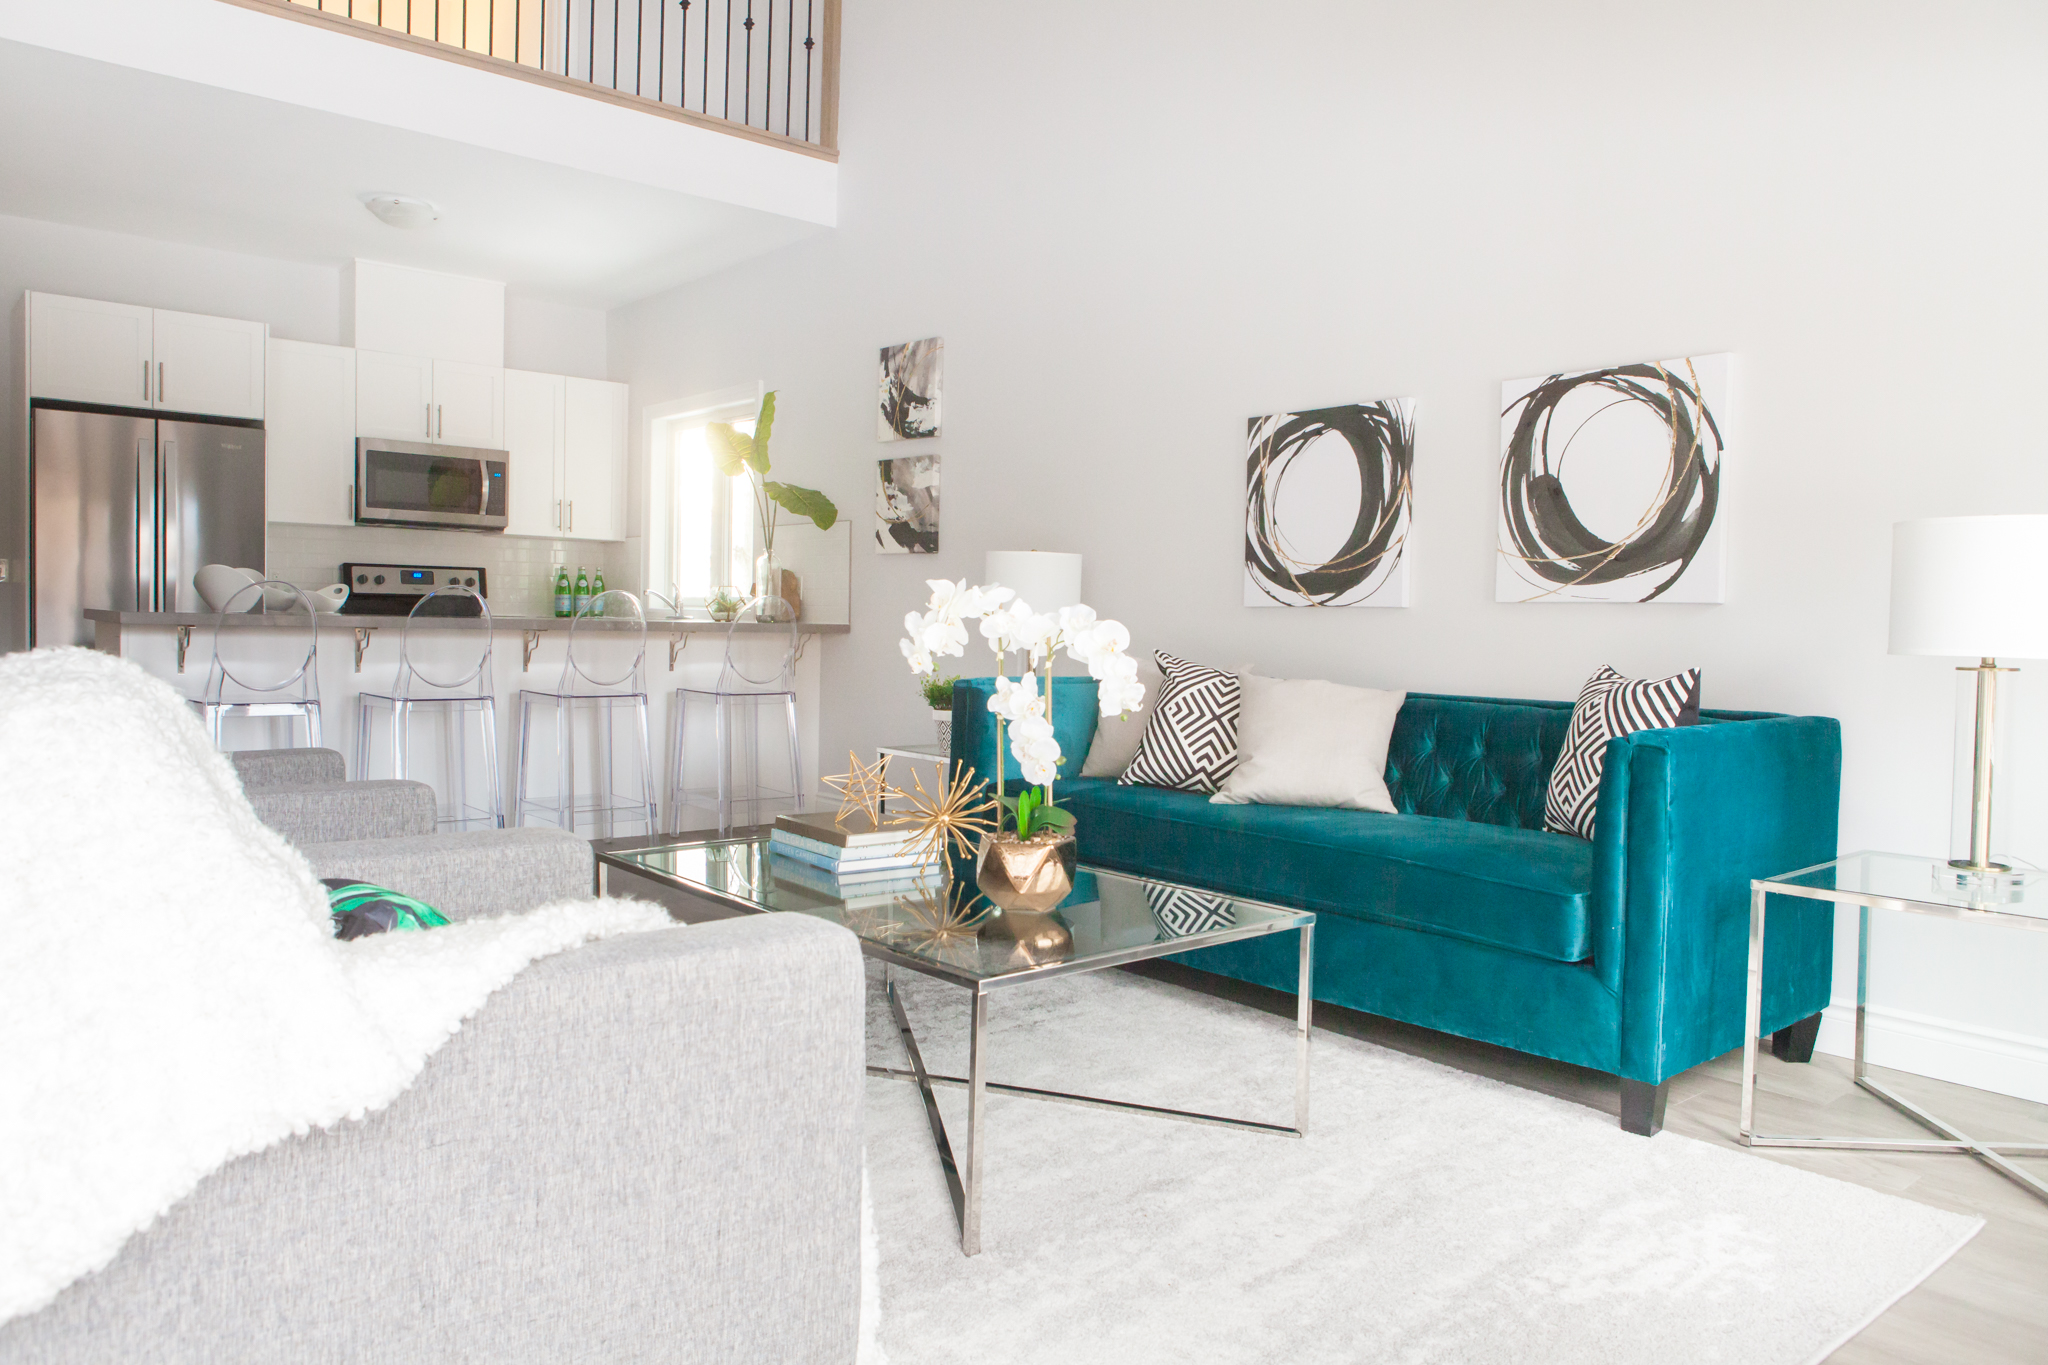 Home Staging project in Barrie. This emerald green sofa looks amazing in the space.